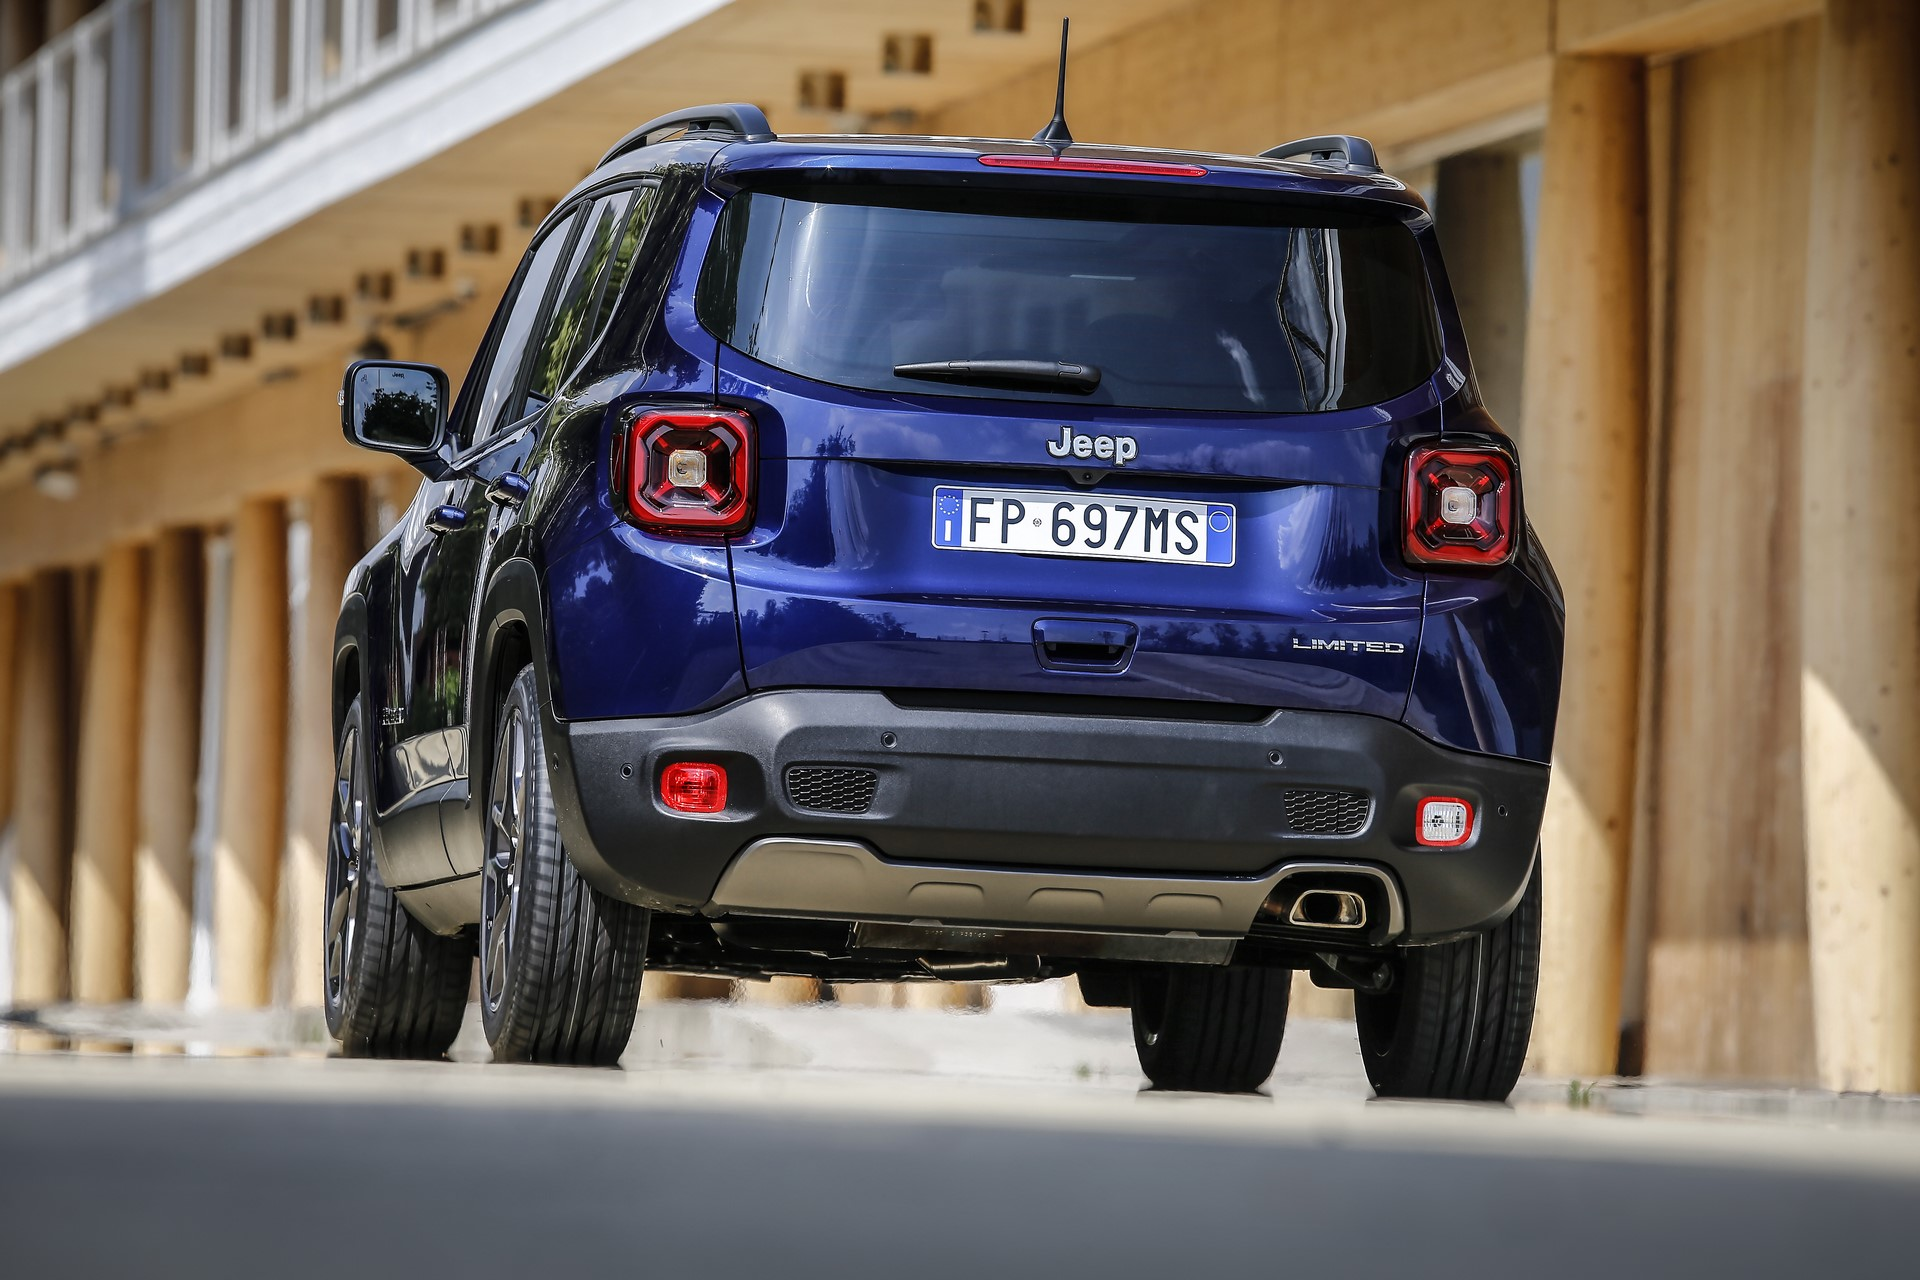 Jeep Renegade facelift 2019 (15)